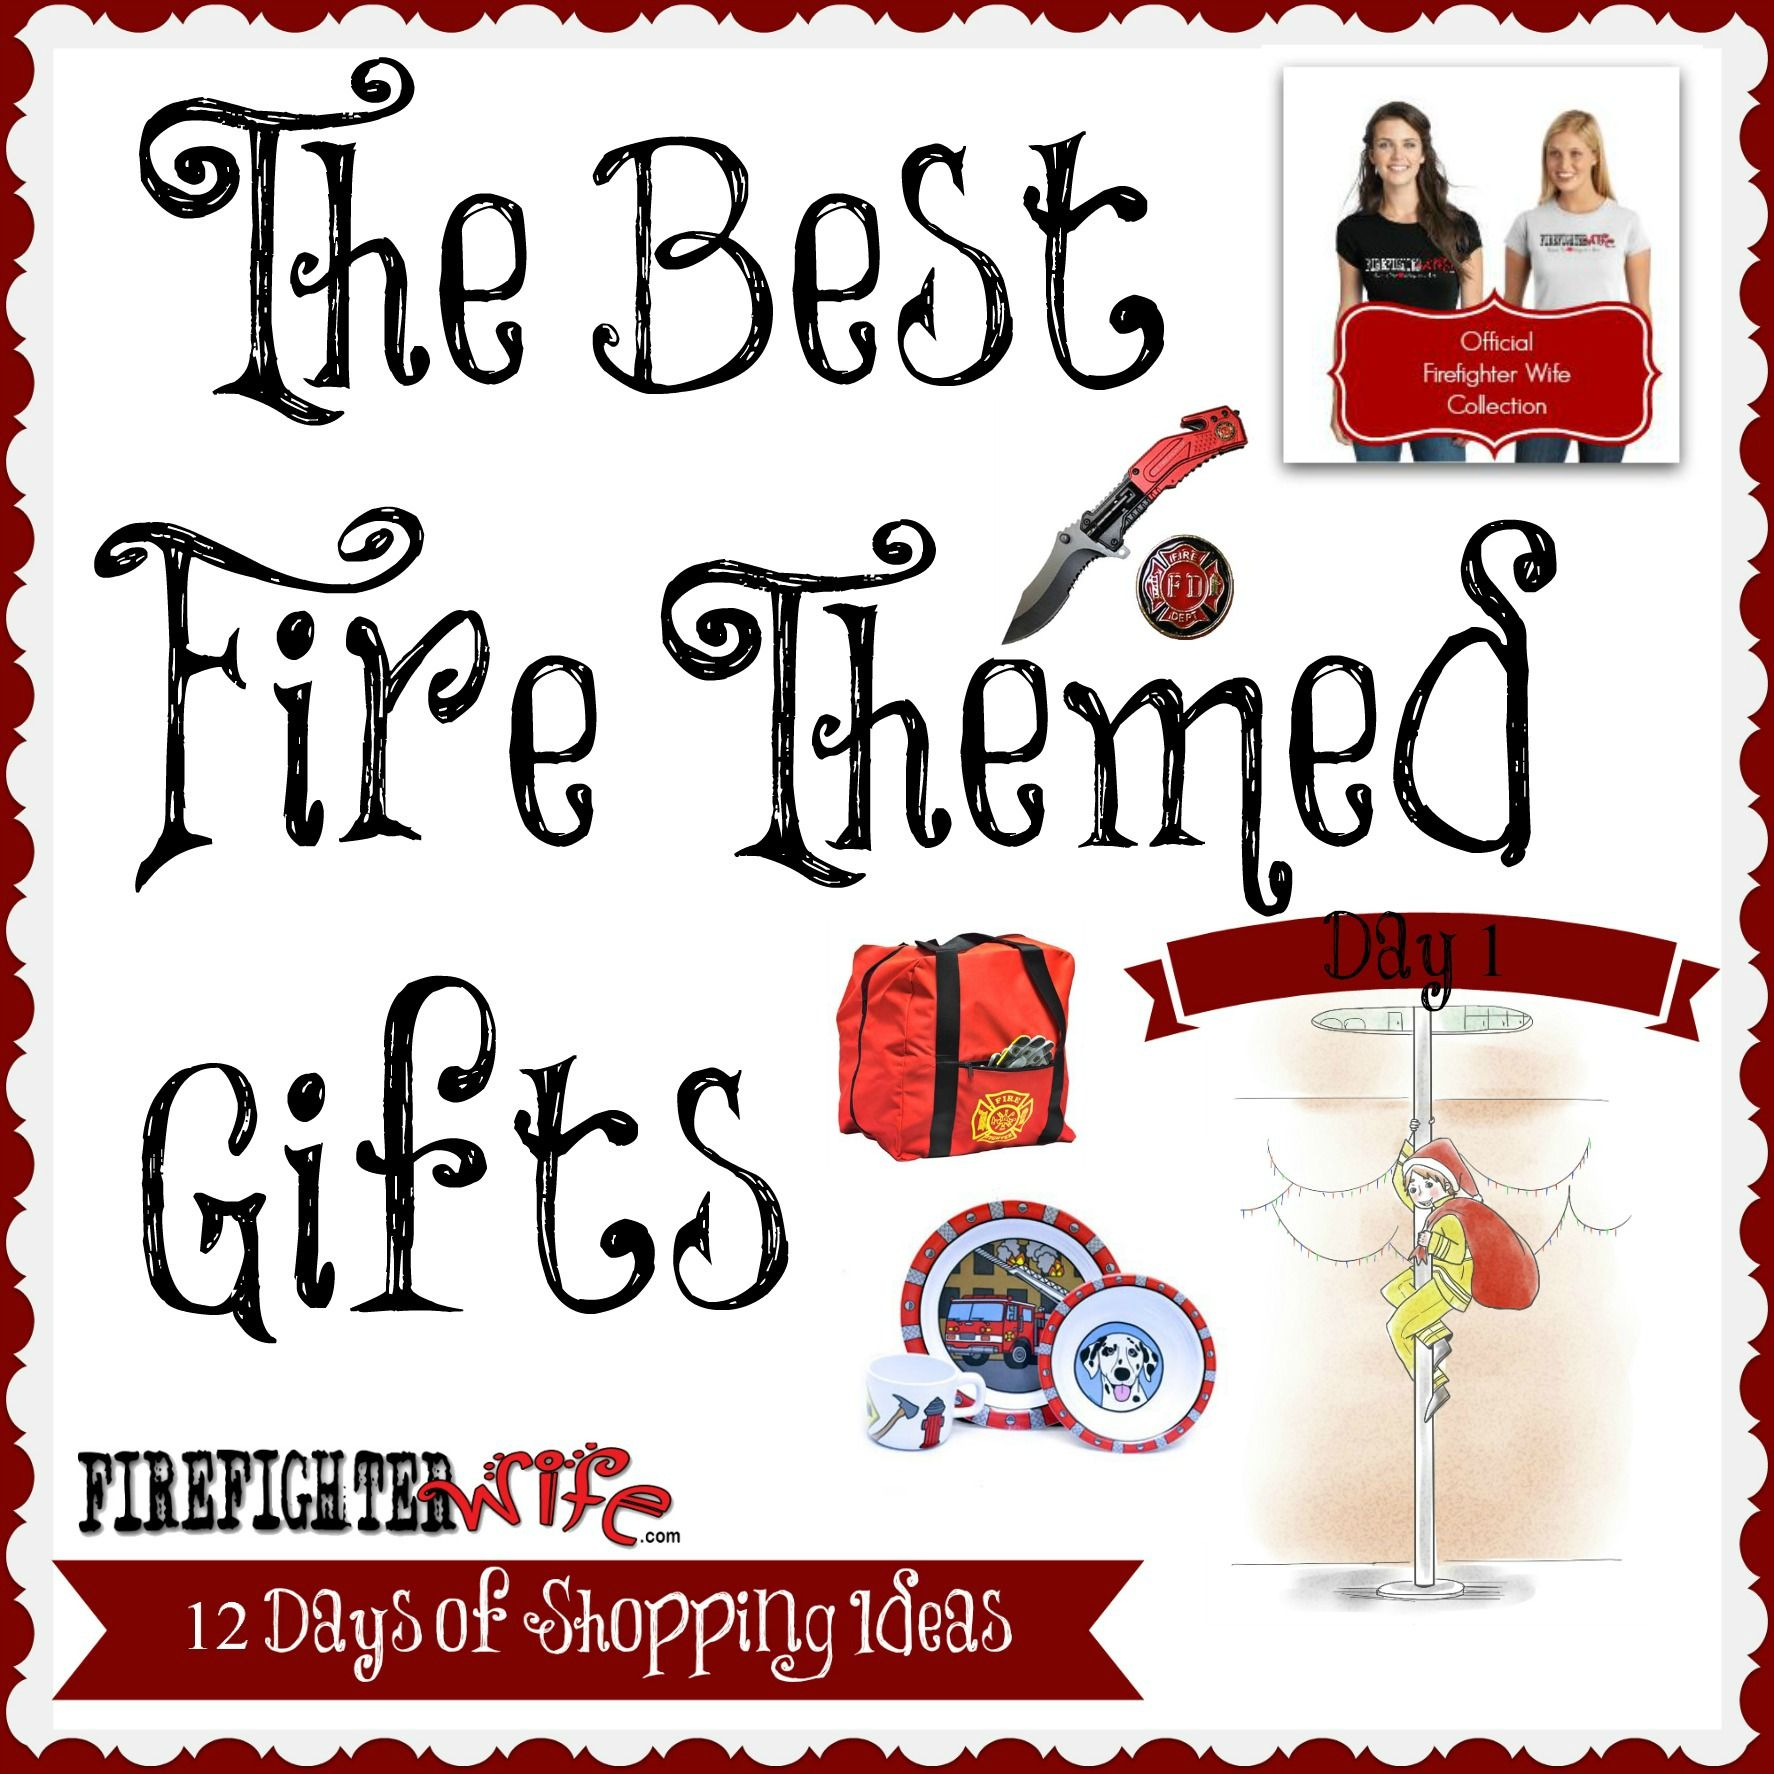 Pin von Firefighter Wife auf Fire Life Gift Guide | Pinterest